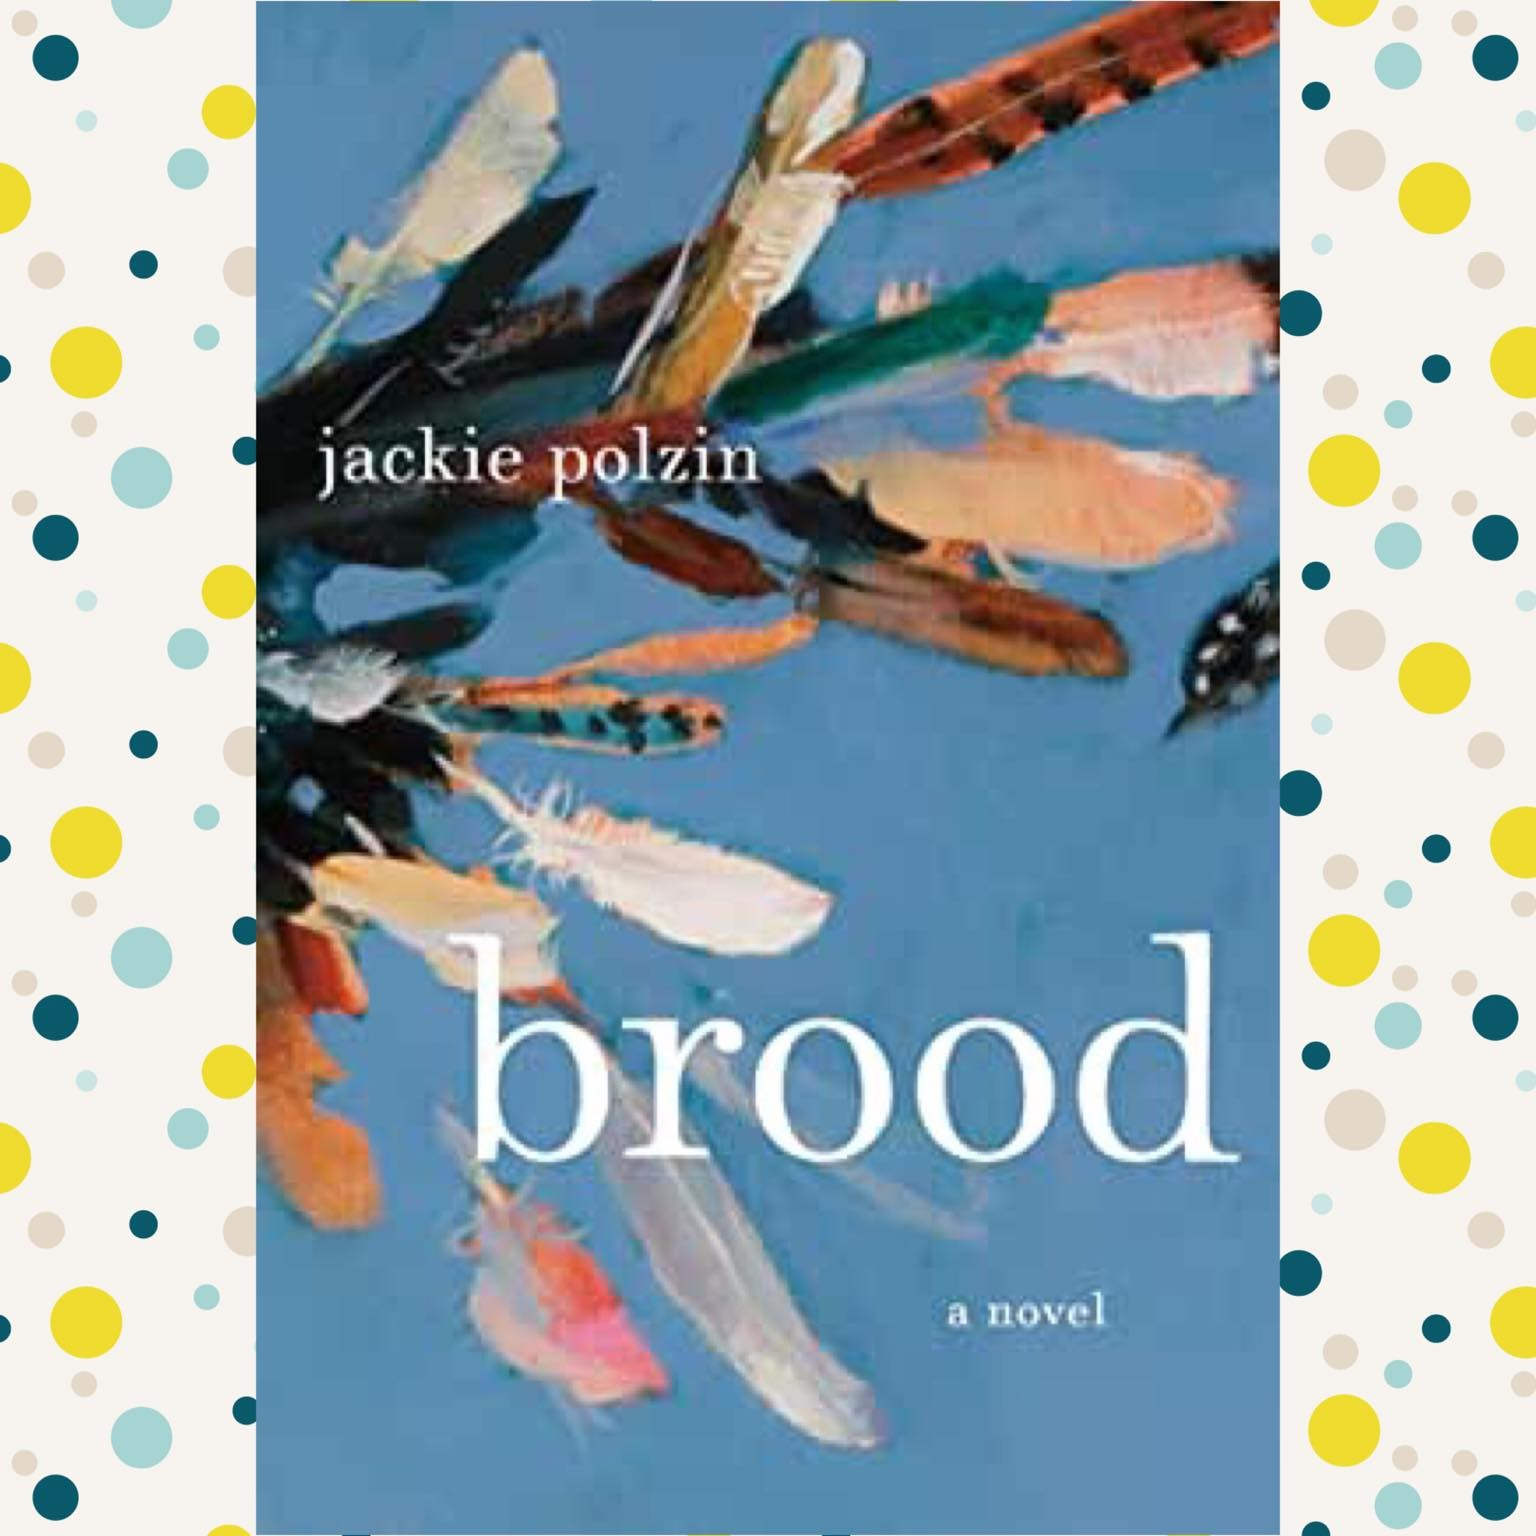 Brood by Jackie Polzin (cover) Image: colorful feathers spread across a brilliant blue sky